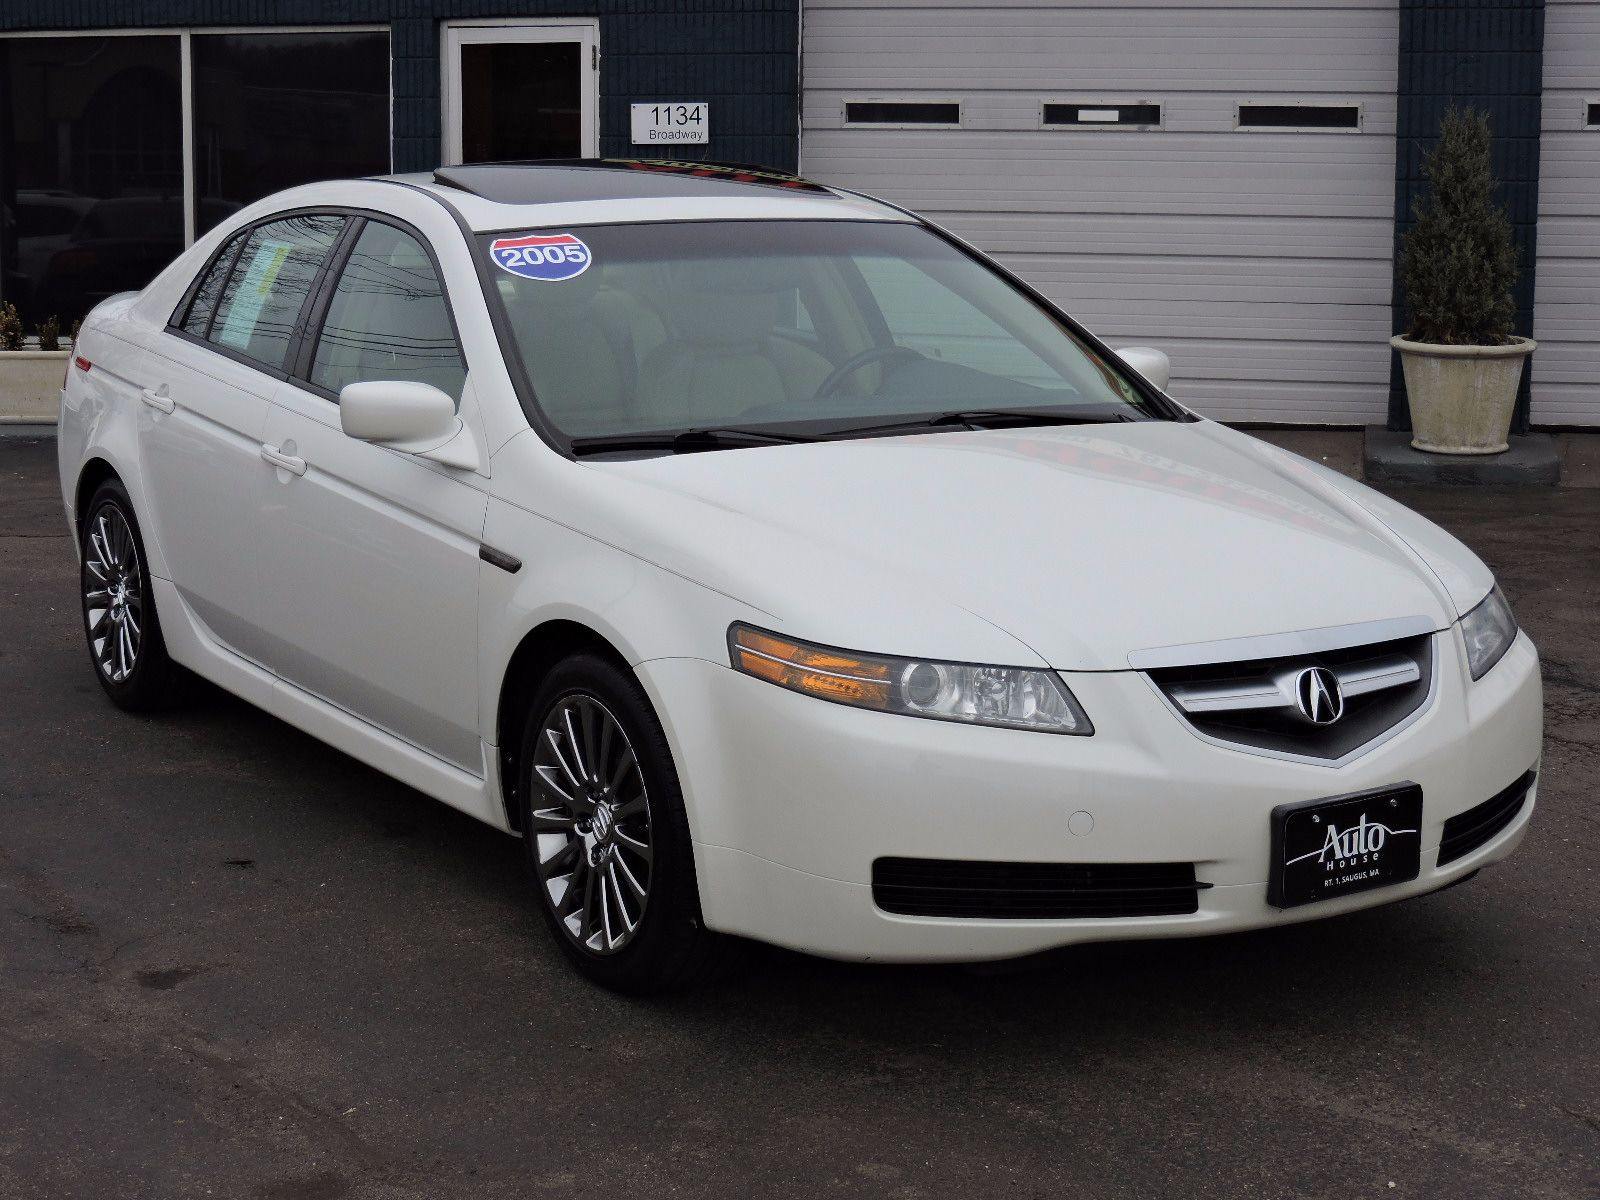 used 2005 acura tl special edition at auto house usa saugus. Black Bedroom Furniture Sets. Home Design Ideas